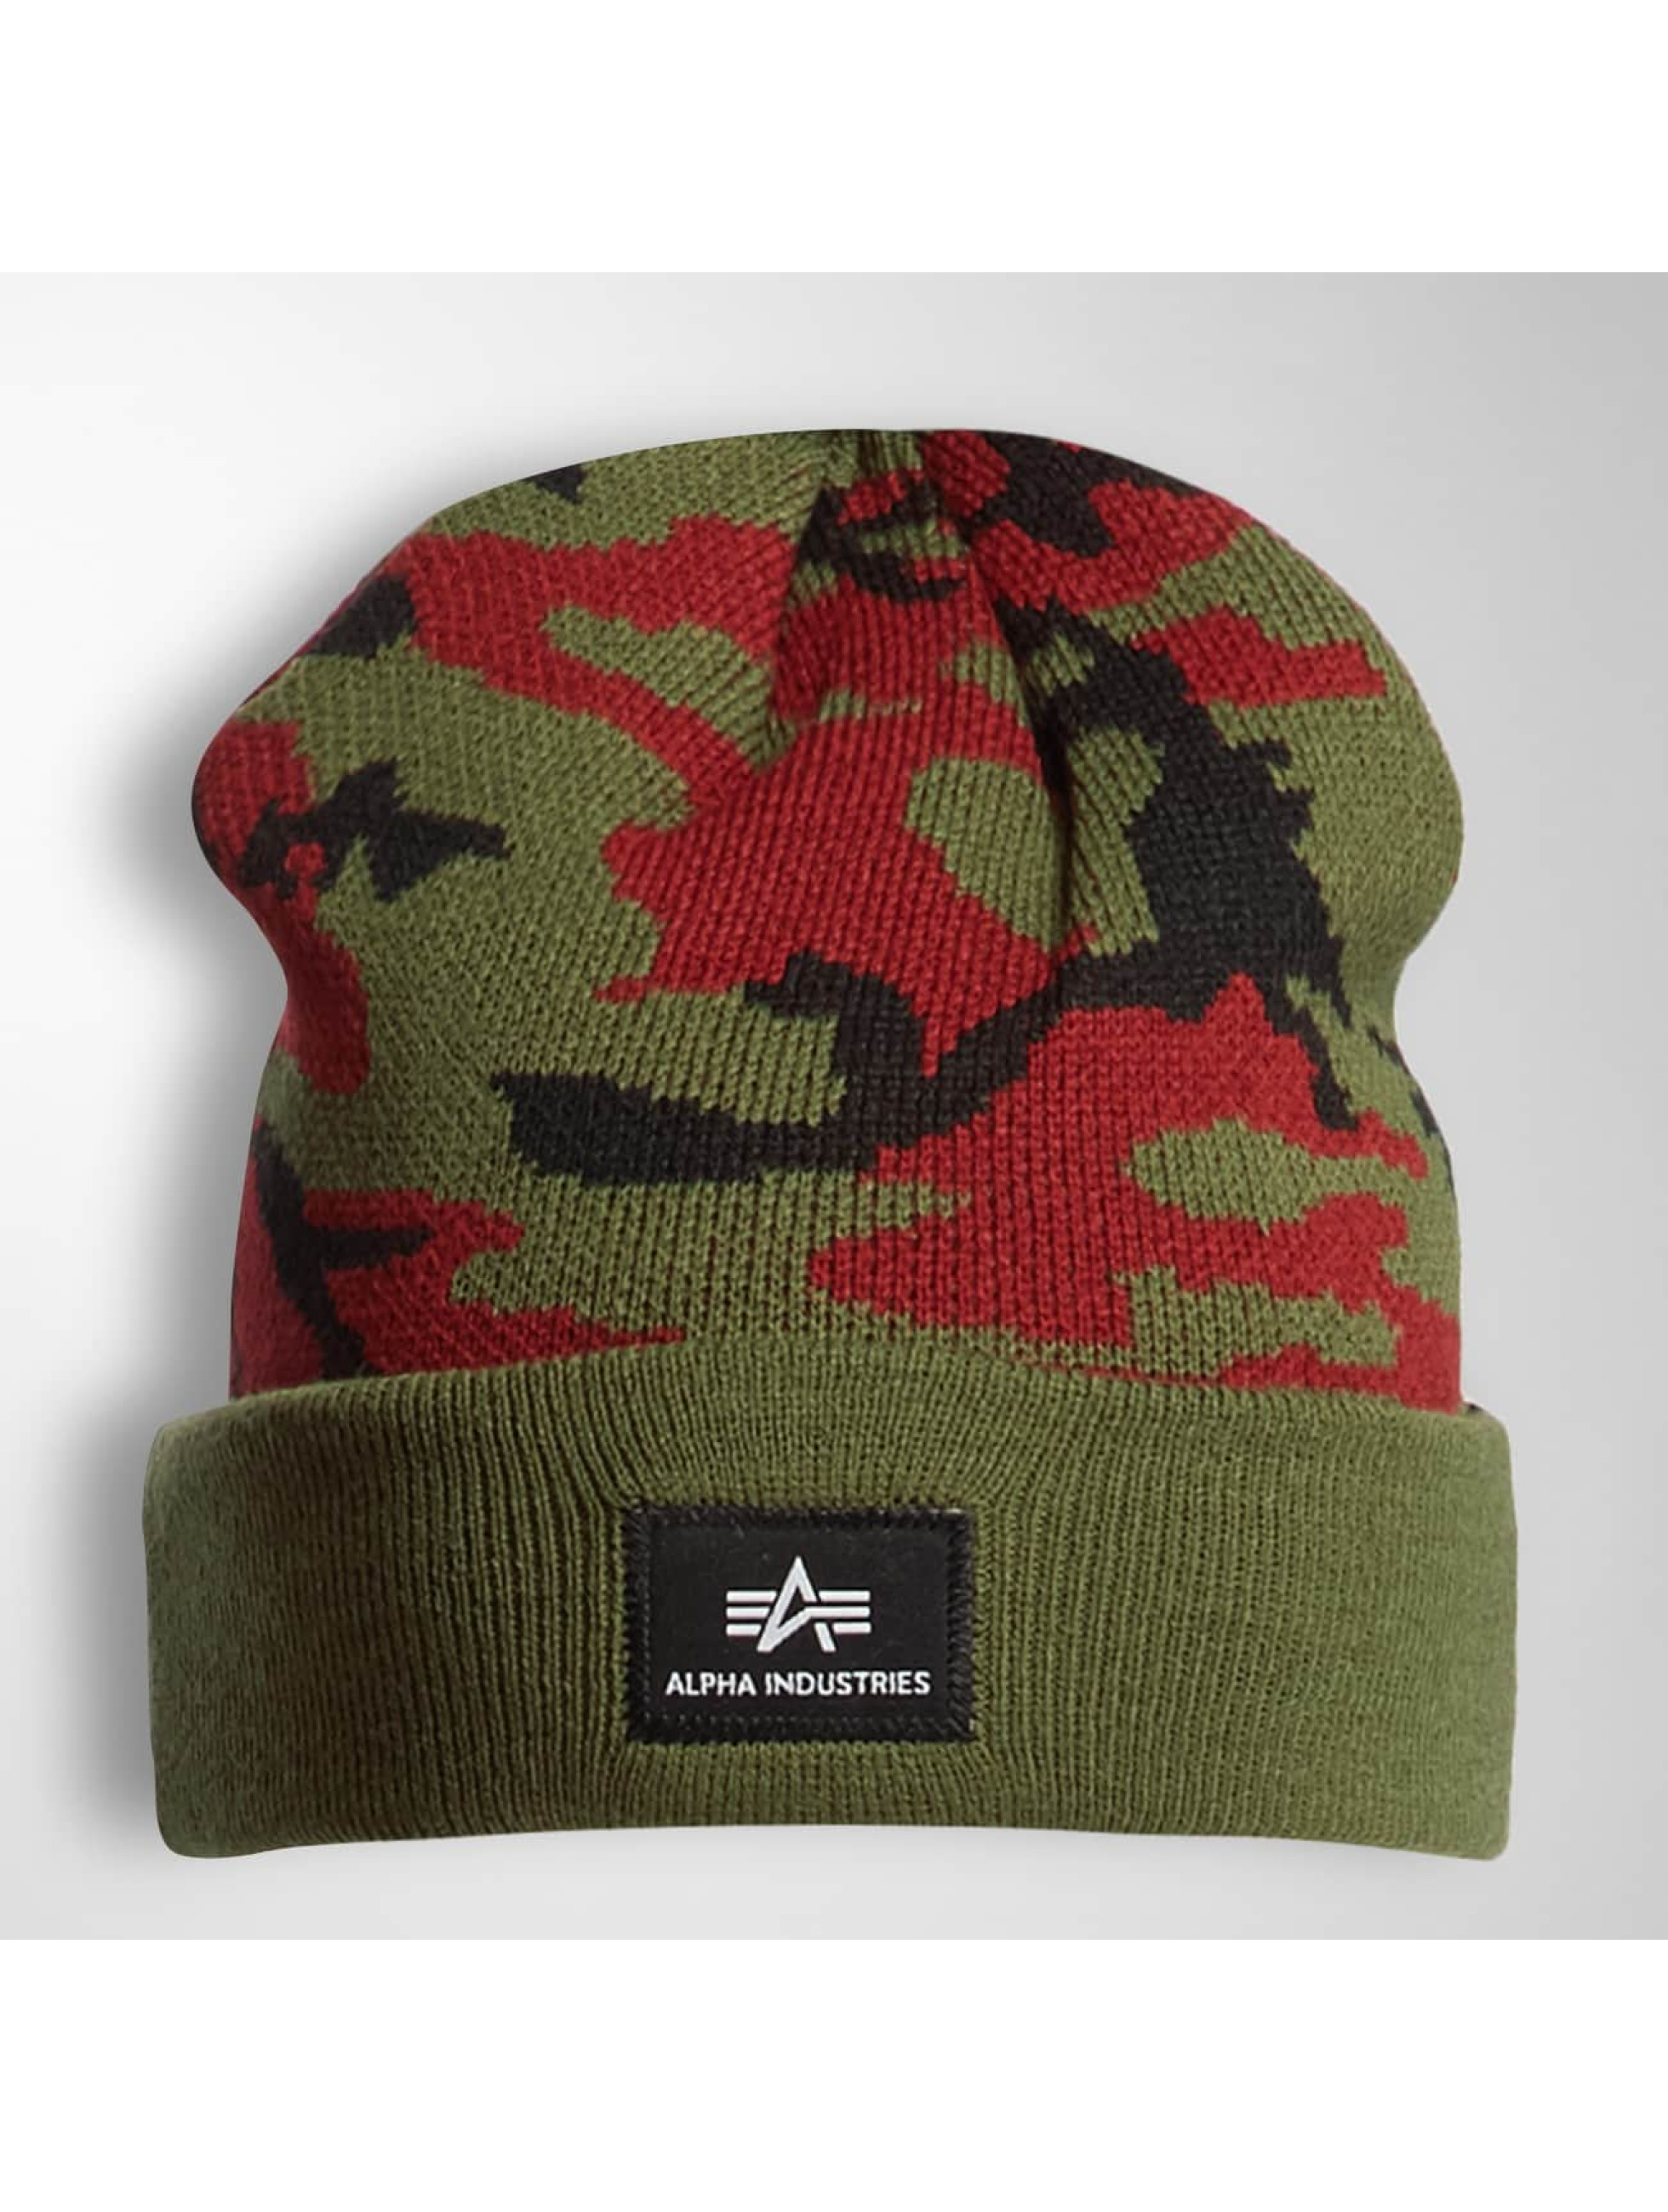 Alpha Industries Hat-1 X-Fit Camo camouflage